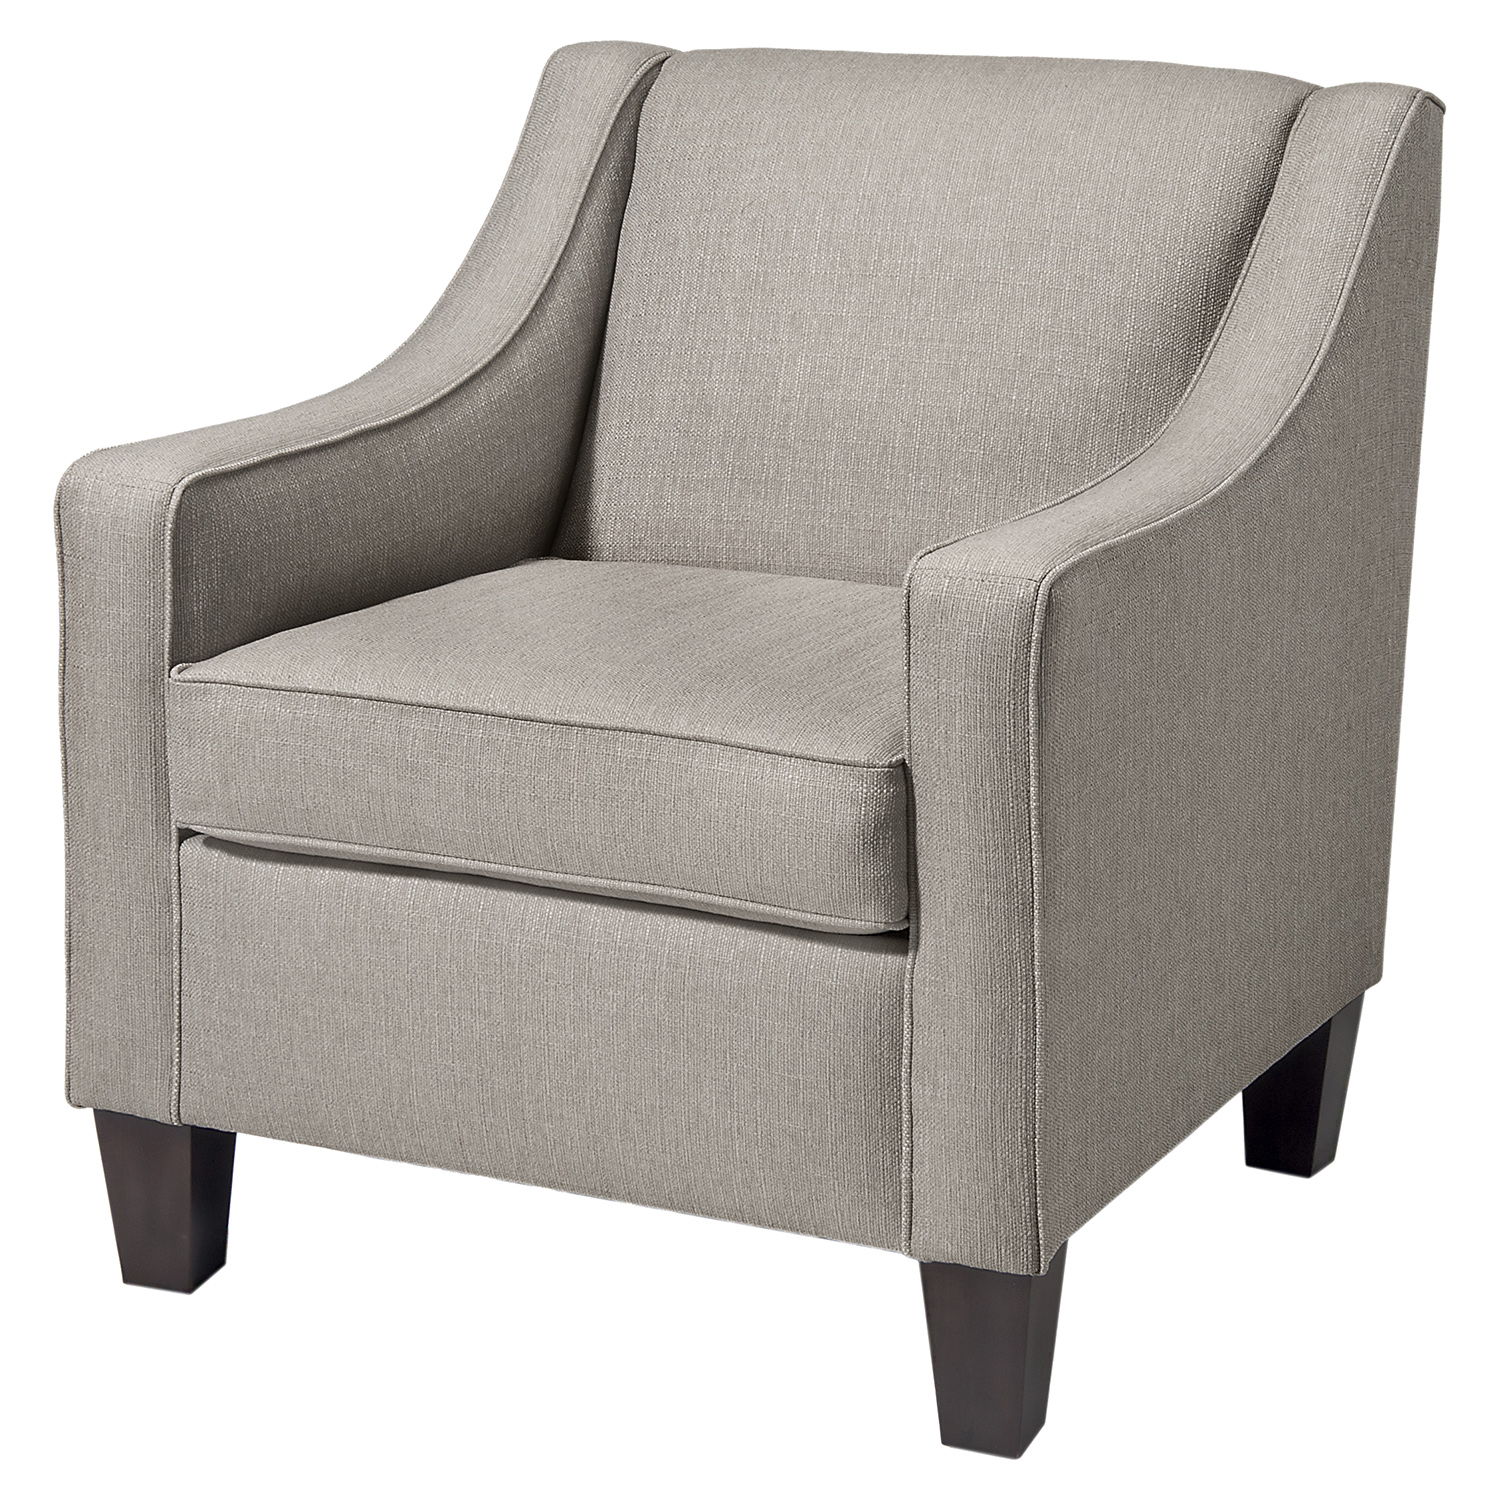 Ellery Club Chair - Taupe